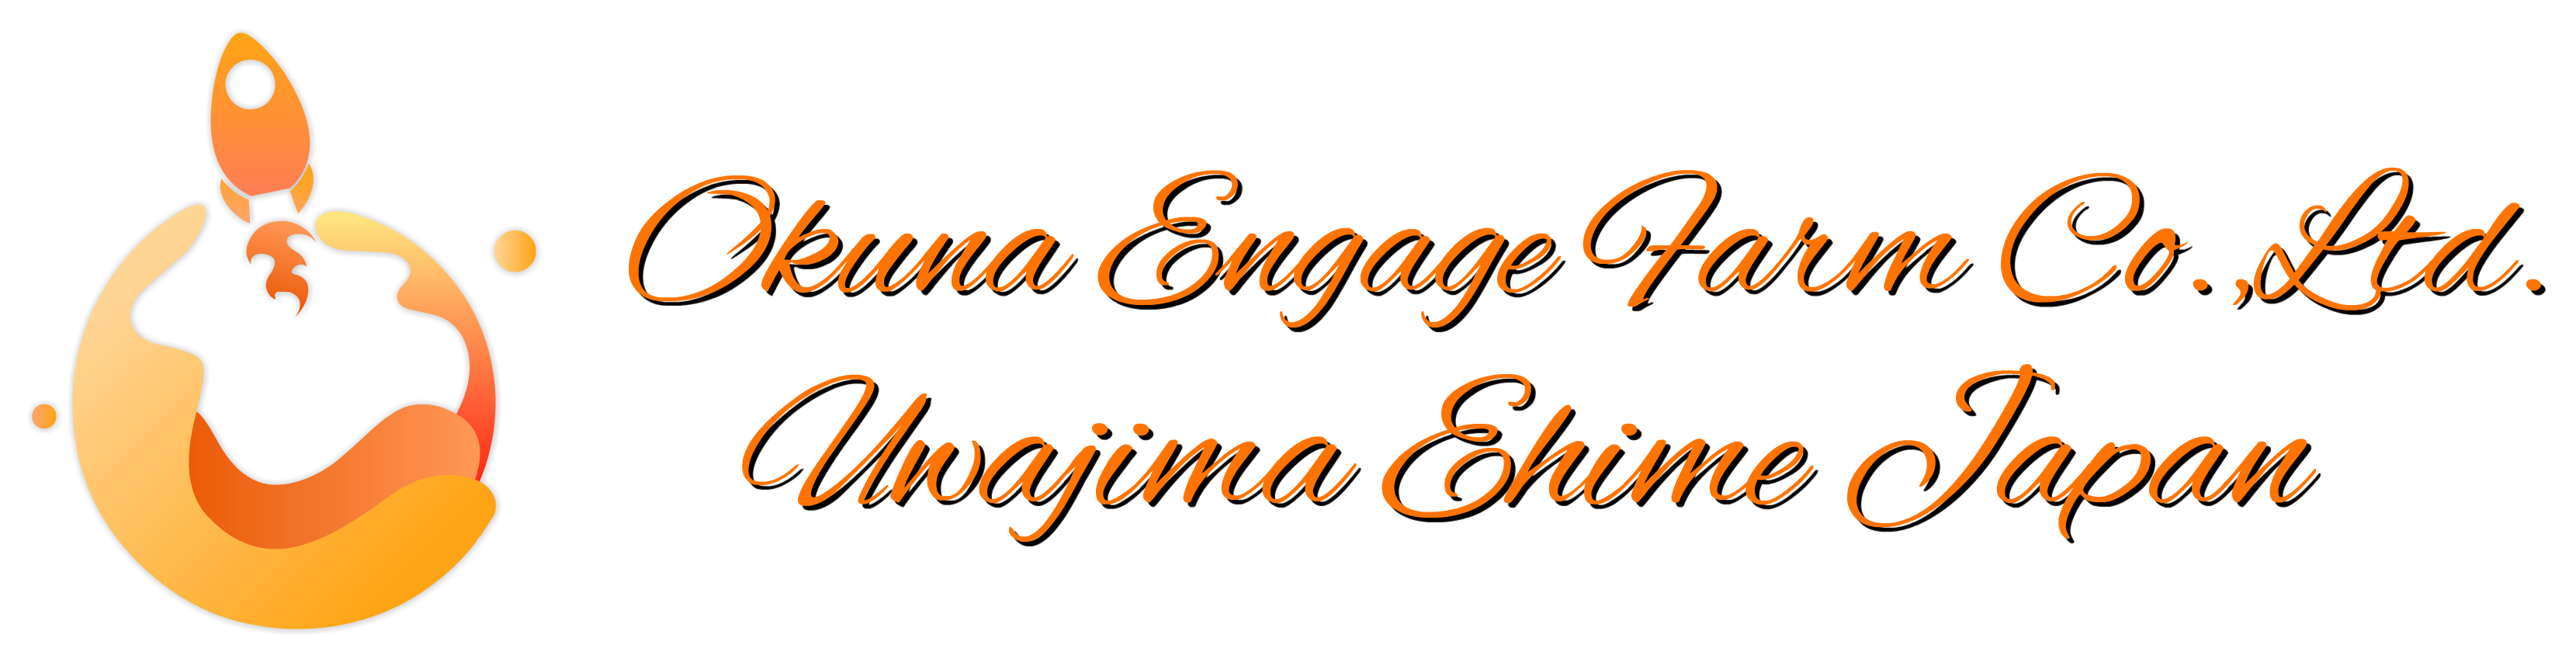 Okuna Engage Farm Co.,Ltd.